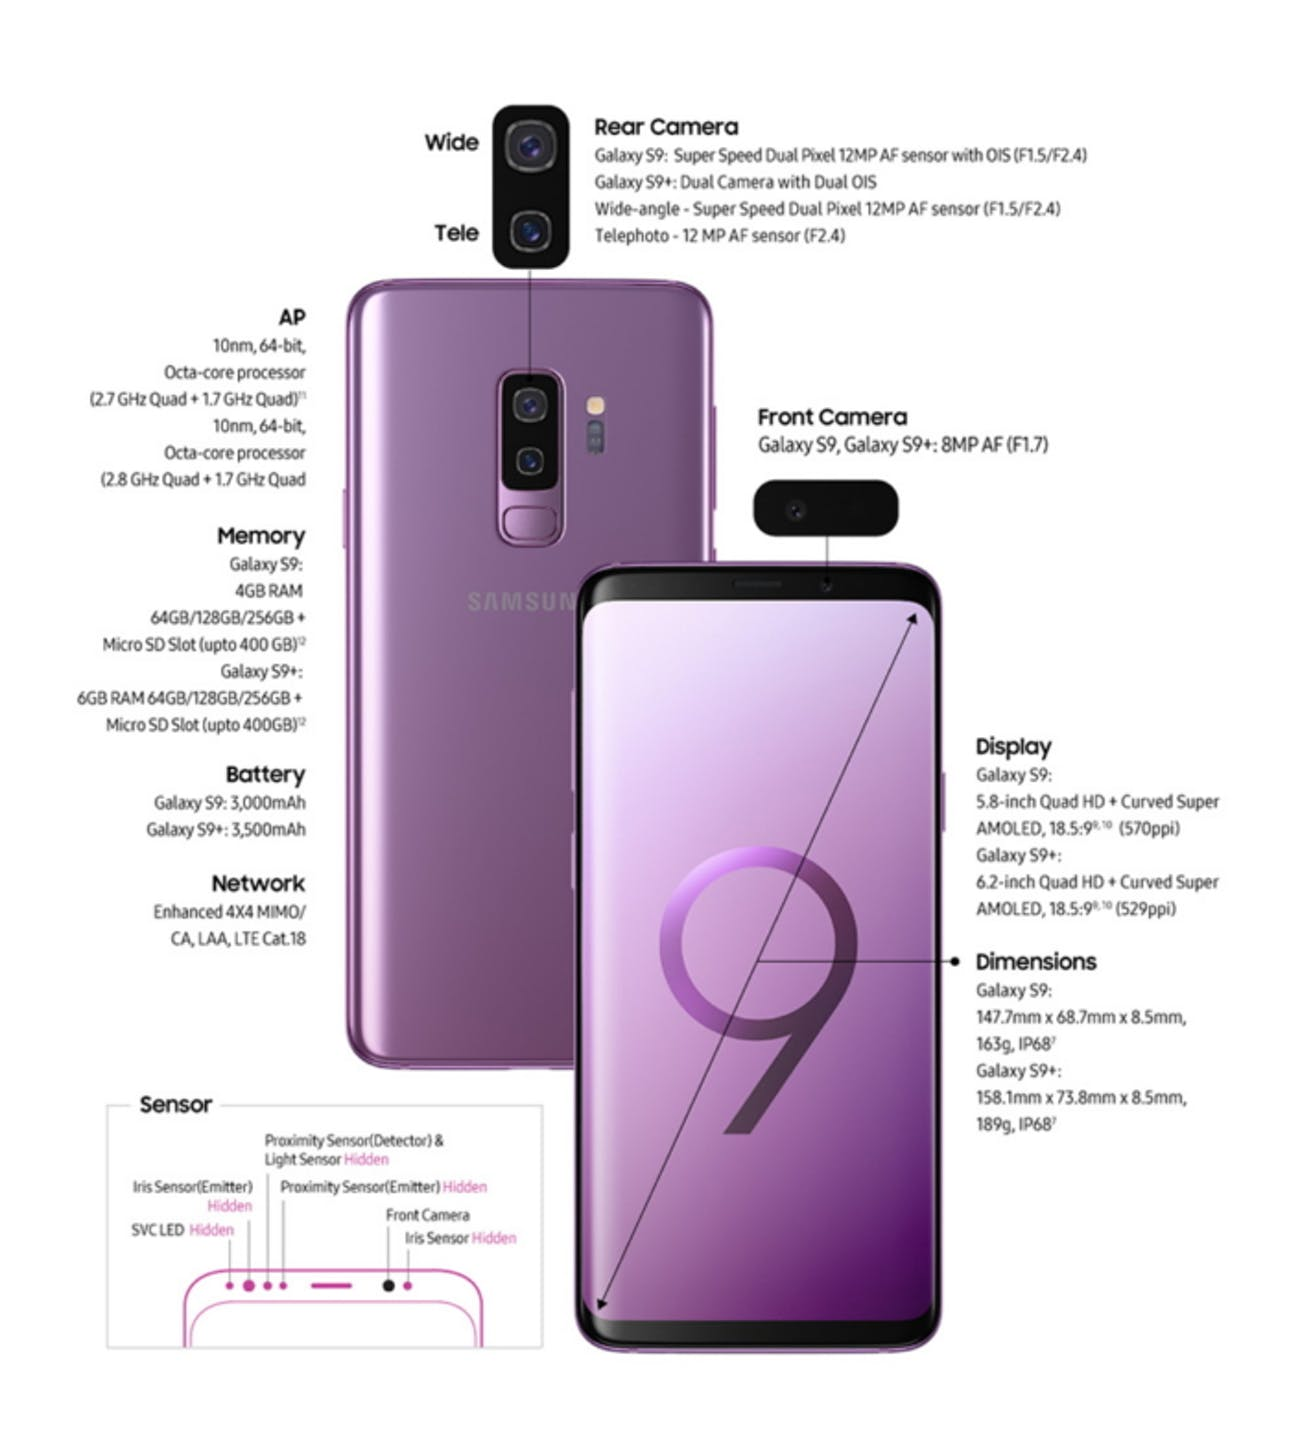 Early Samsung Galaxy S9 Data Reveals iPhone-Beating Stats | Inverse